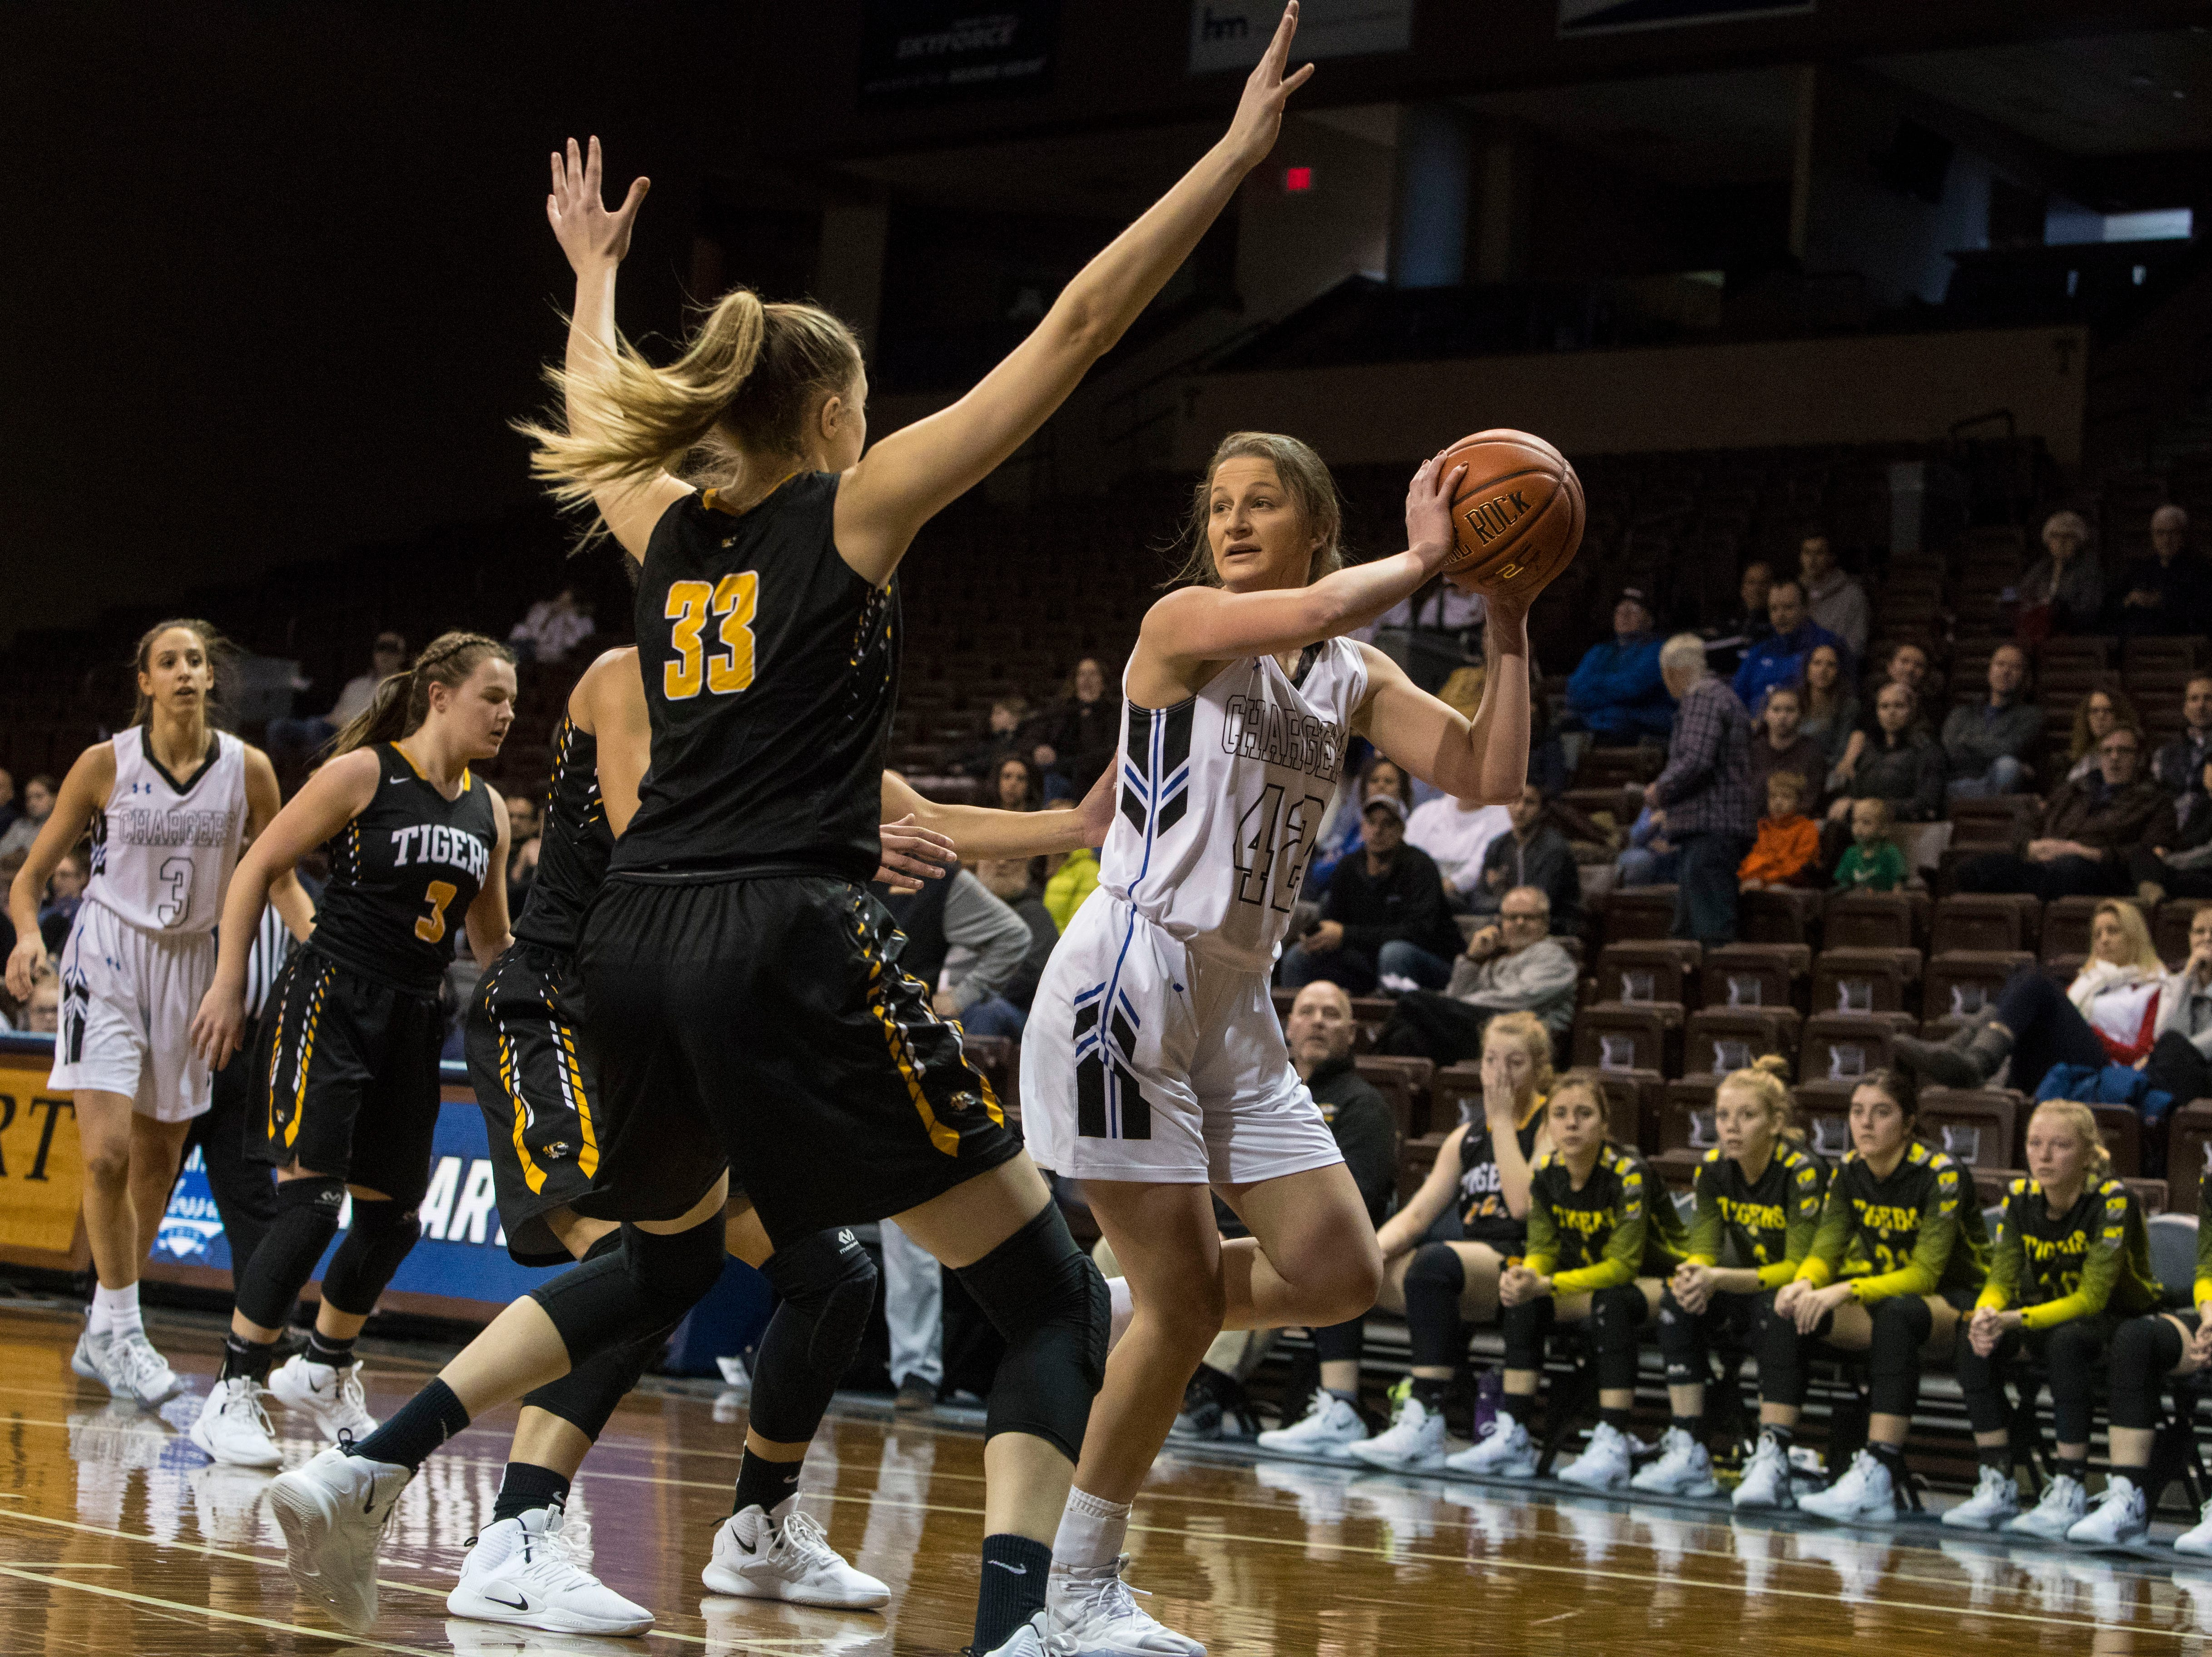 Sioux Falls Christian's Kylee VanEgdom (42) looks to pass the ball during a game against Hutchinson at the Hoop City Classic at the Sanford Pentagon in Sioux Falls, S.D., Saturday, Dec. 29, 2018.